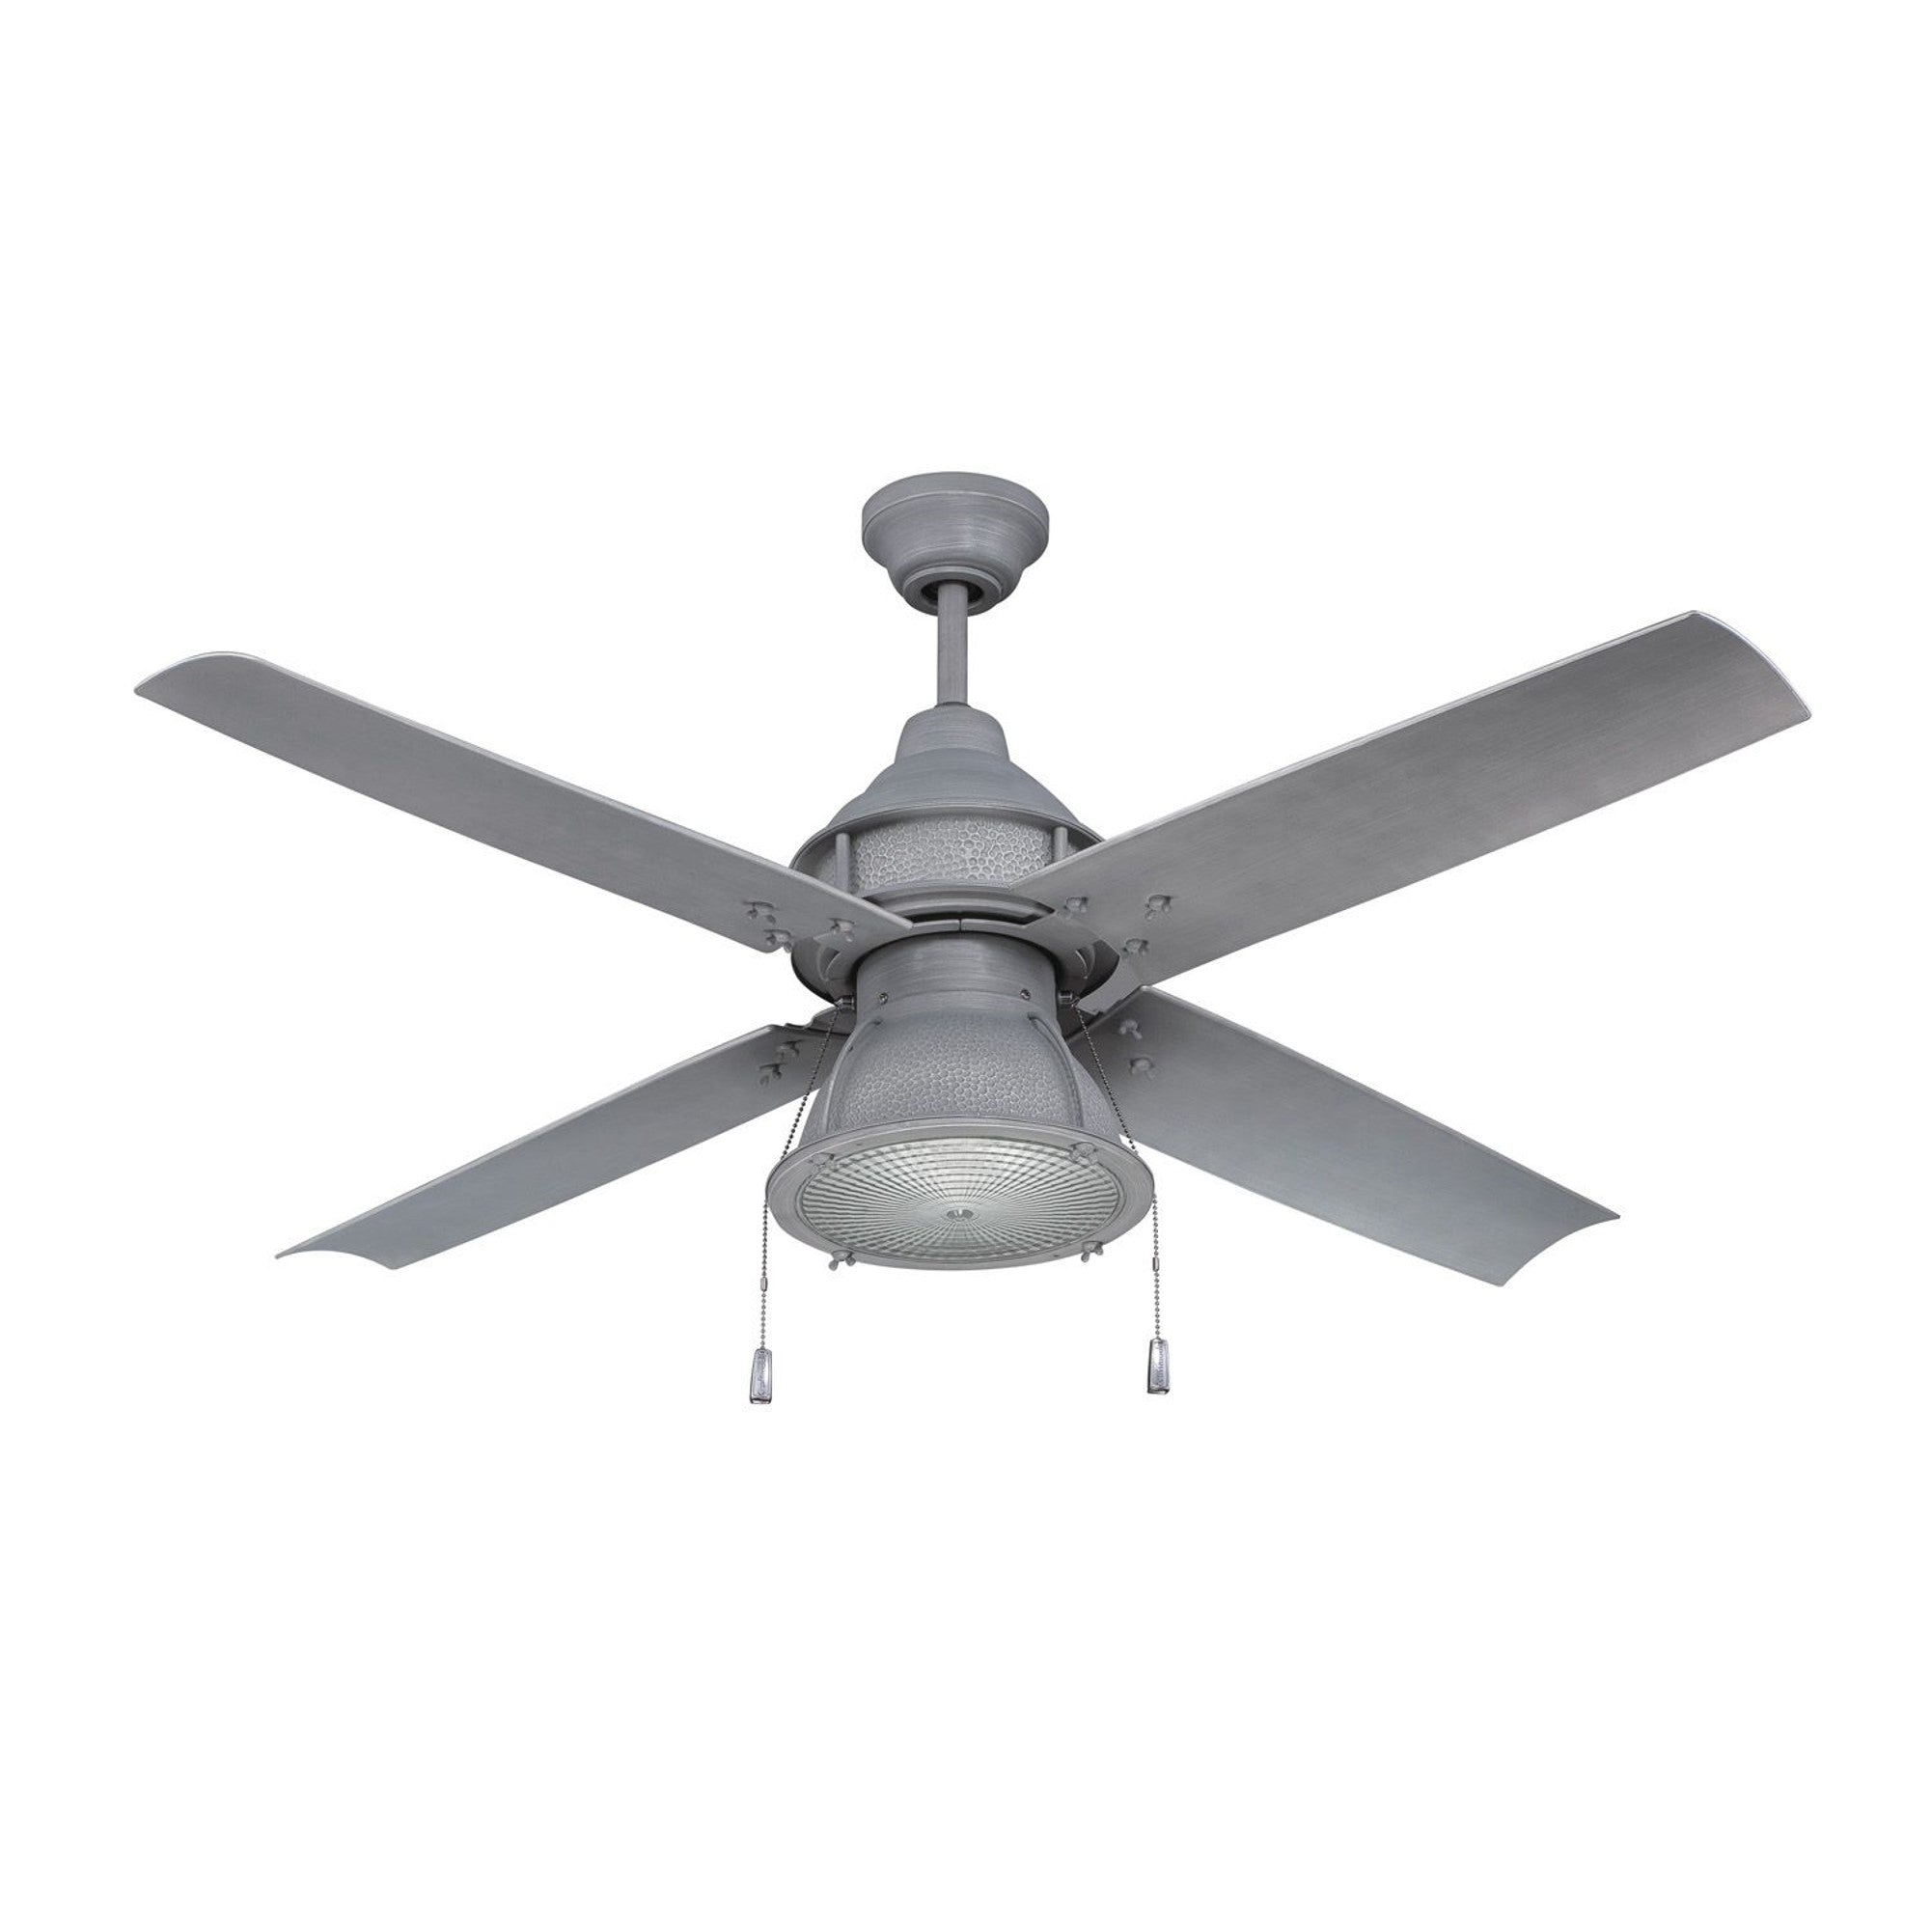 dia advantage category shop tool industrial exclusive outdoor garage galvanized fan fans j d mfg tools indoor northern ceiling